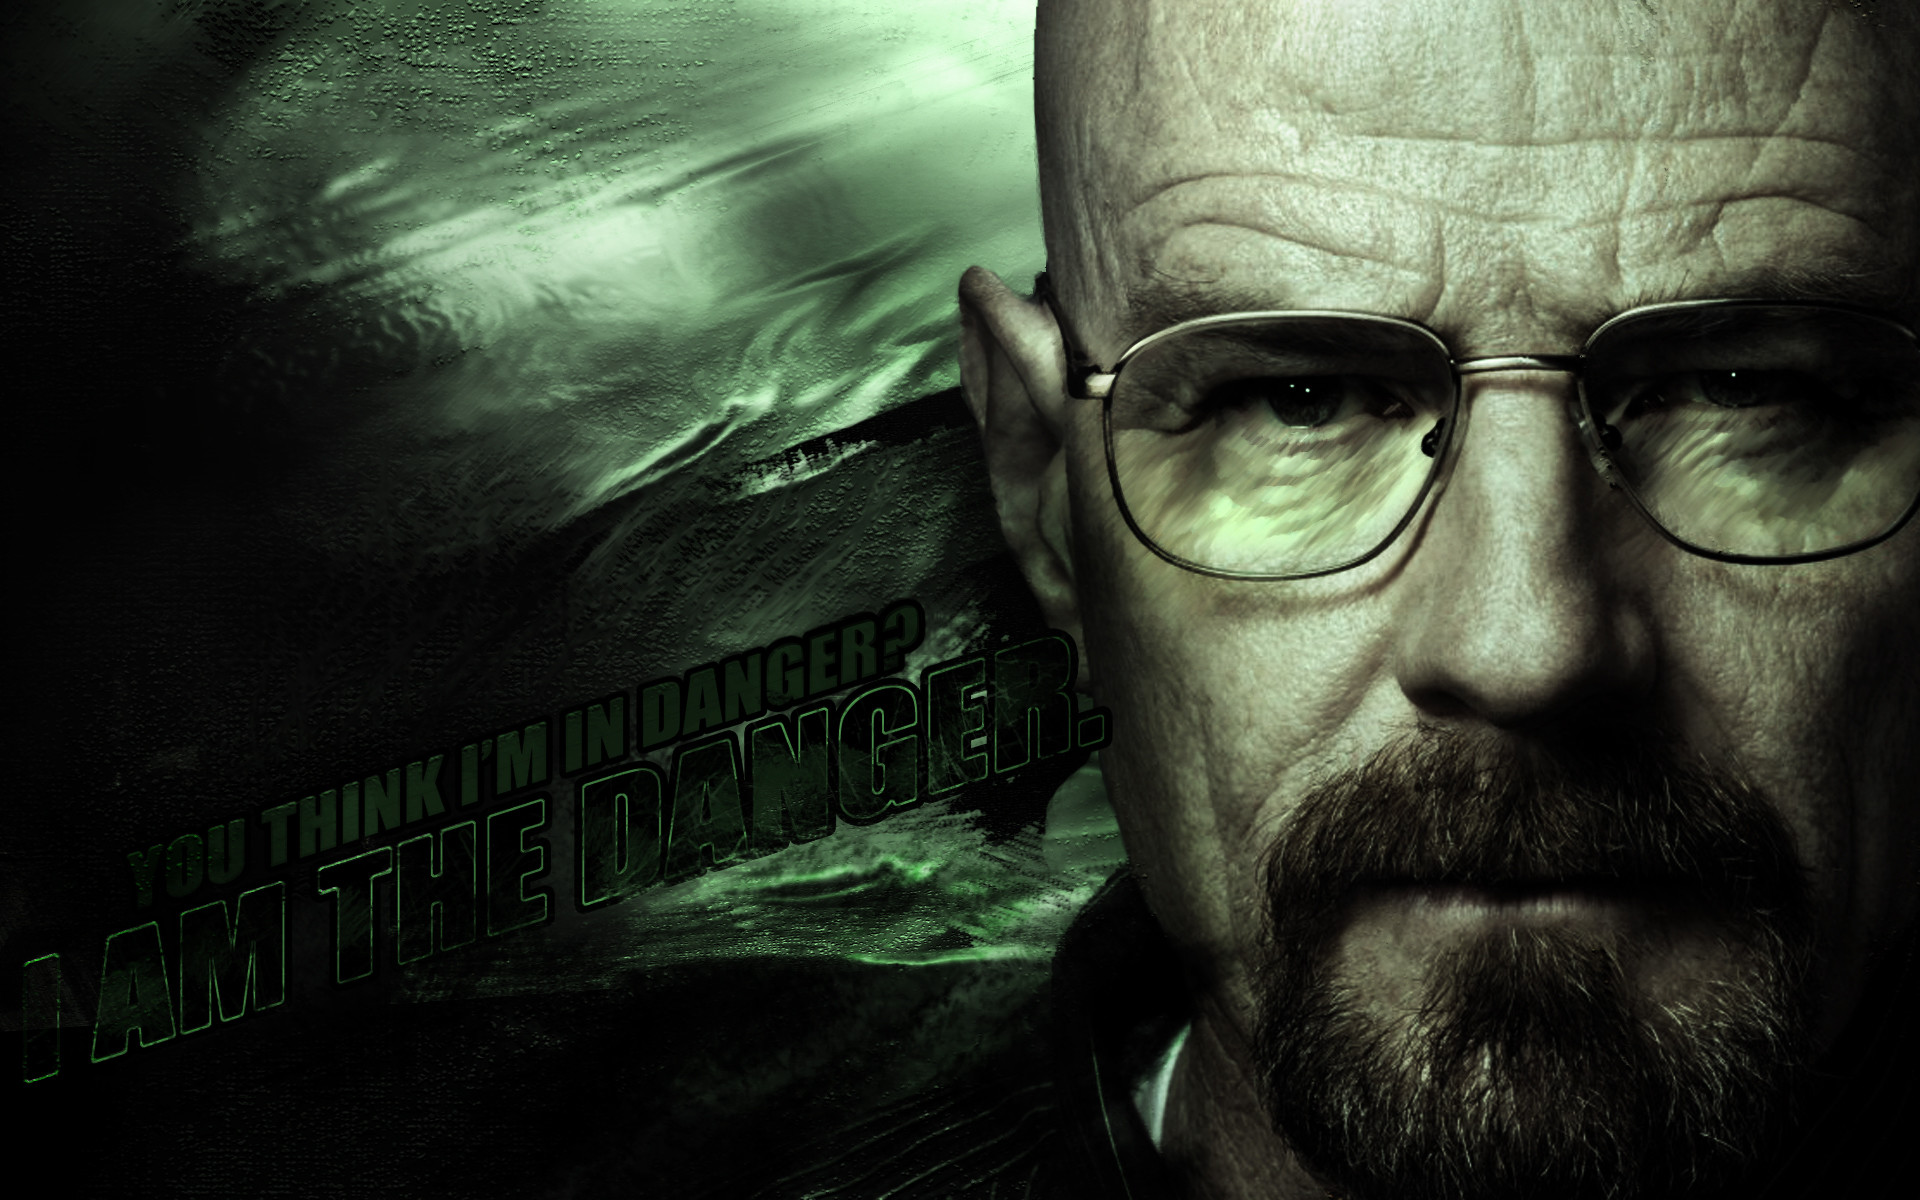 Breaking Bad Hd Iphone Wallpaper Breaking Bad Wallpaper All Hail The King 62 Images